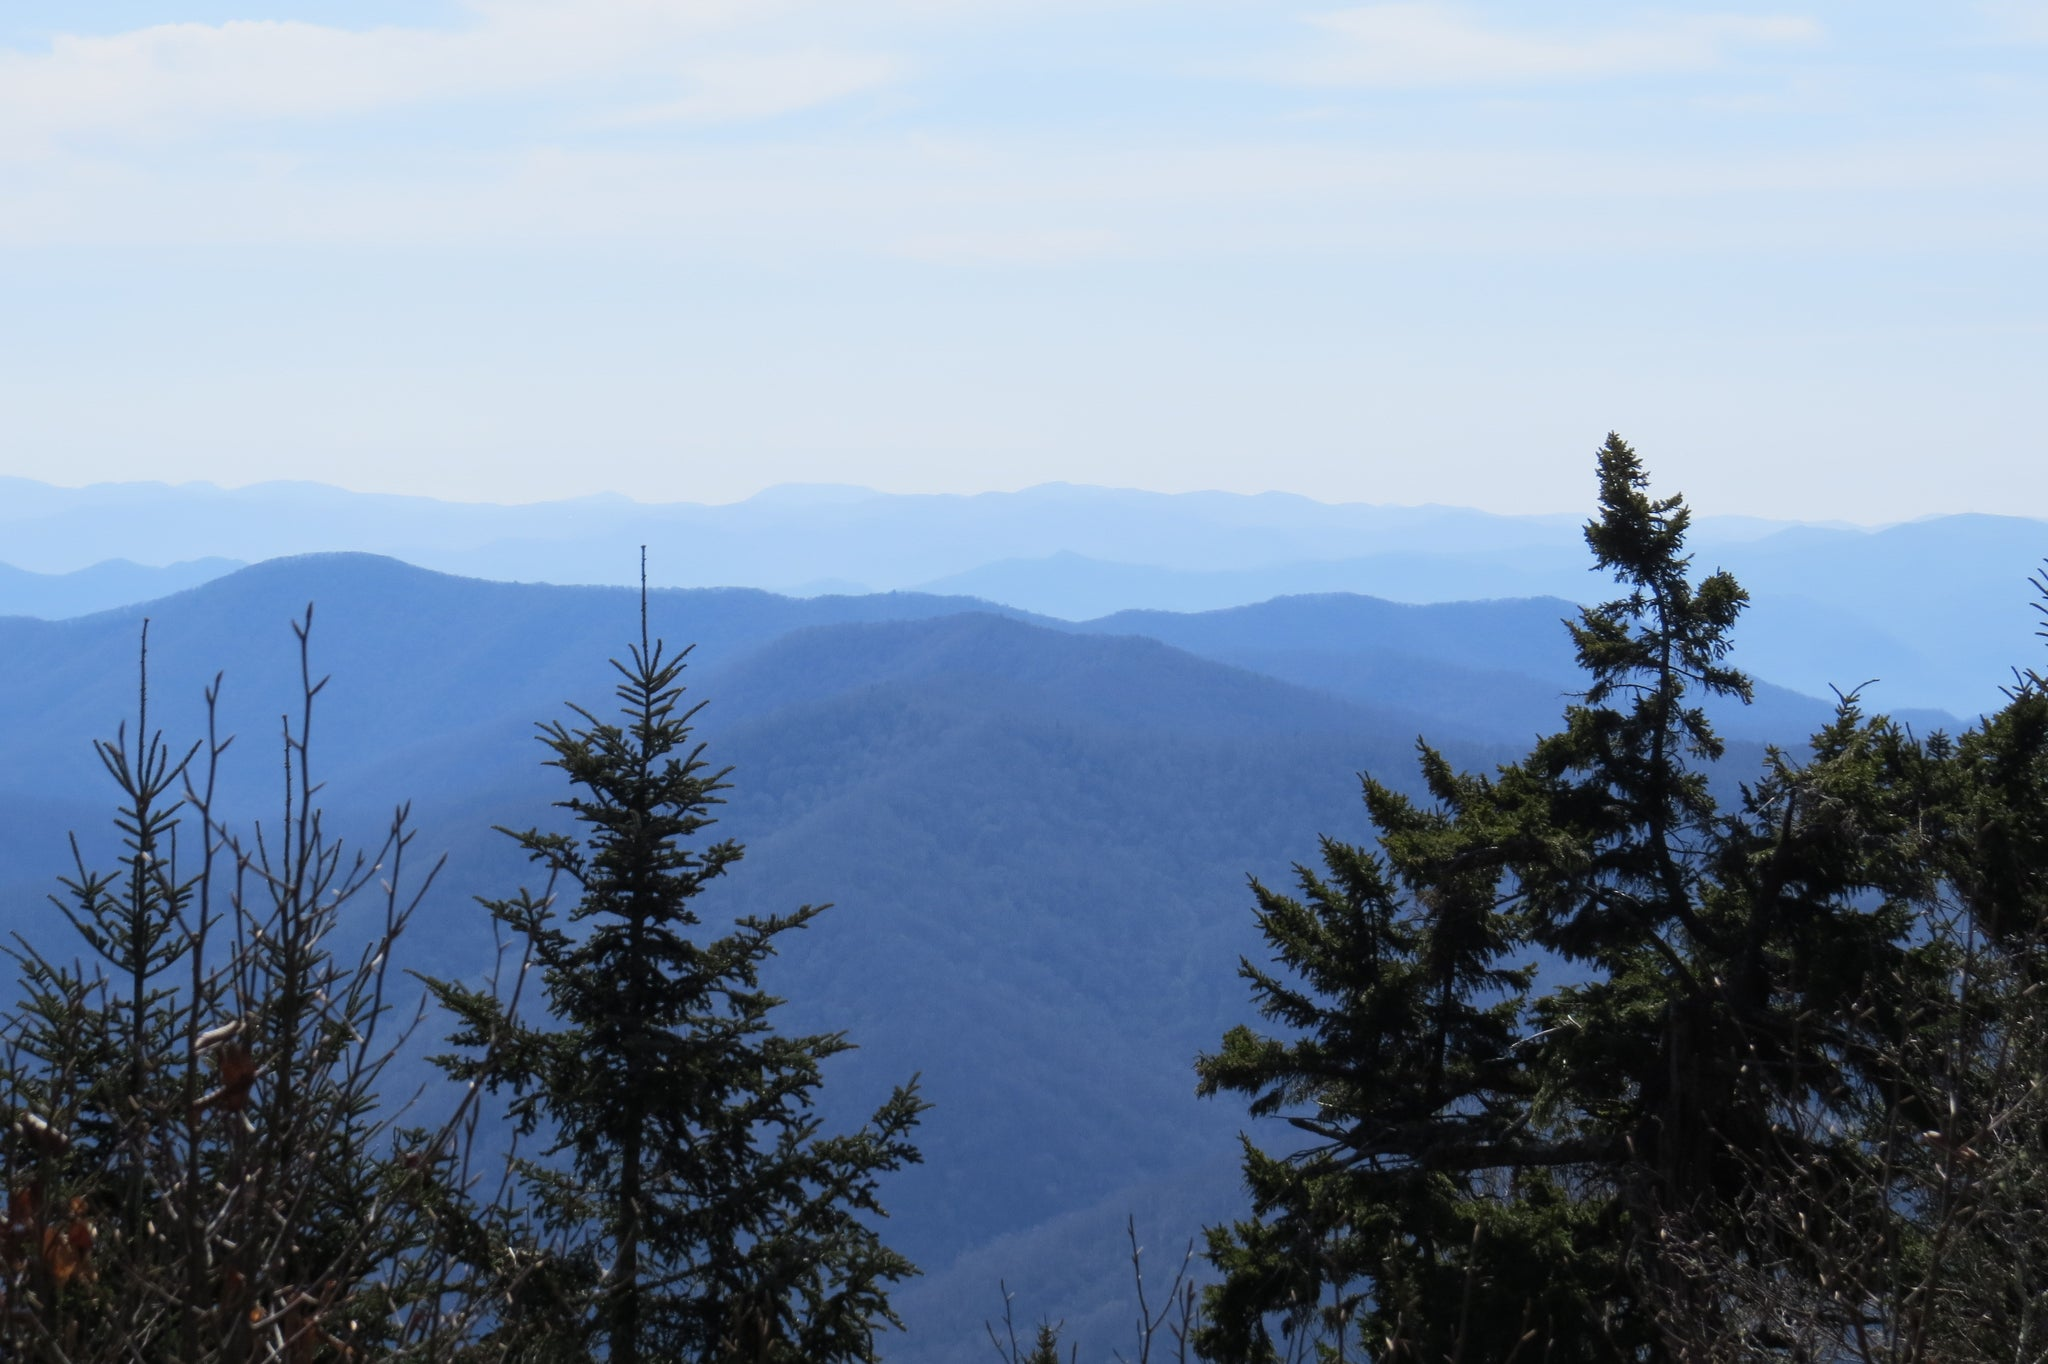 Illustrated Guide to Great Smoky Mountains National Park: The Gap Is Where It's At (Part 3)